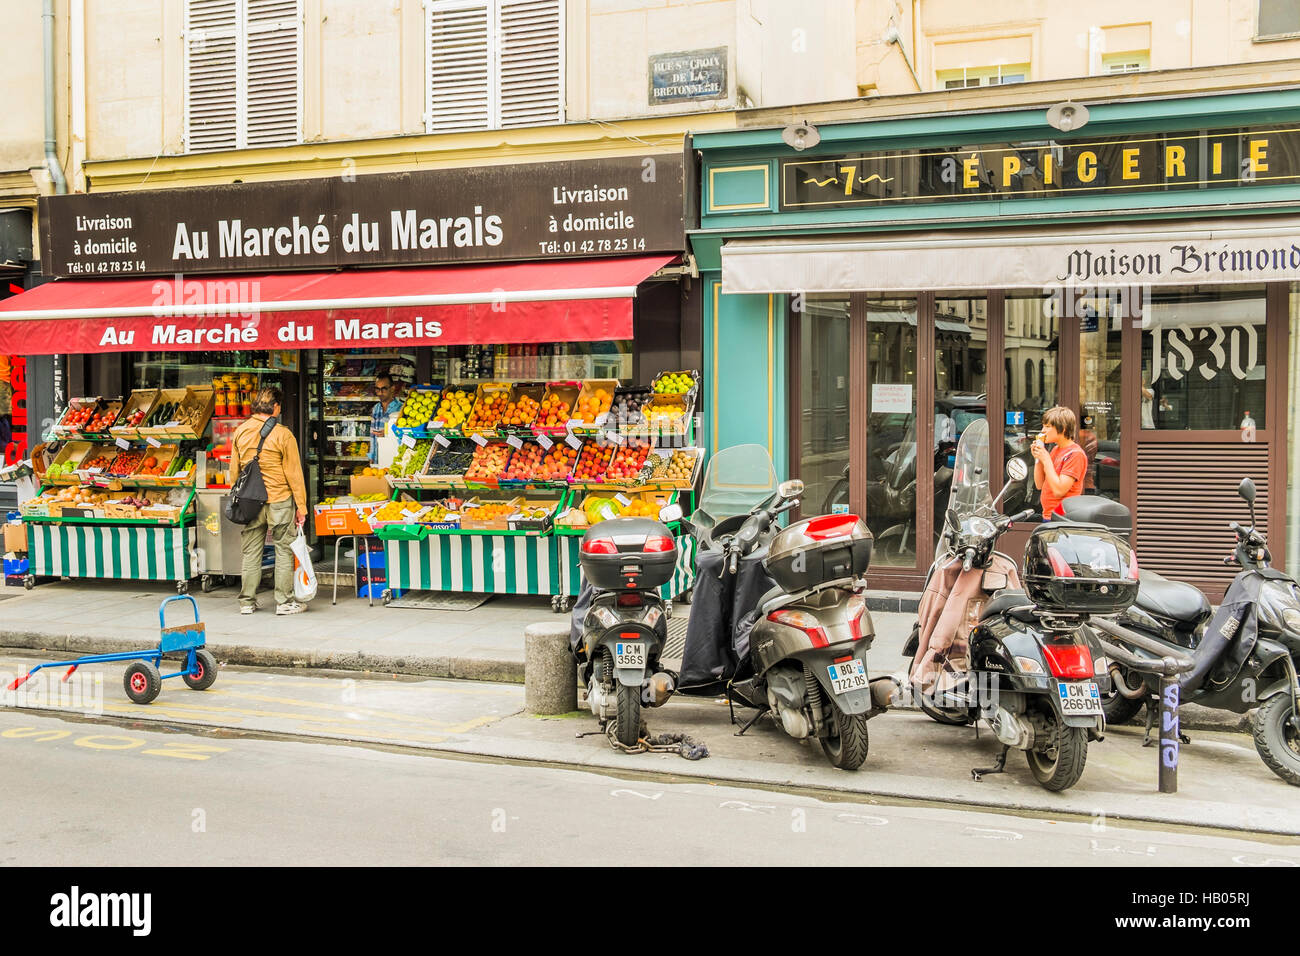 street scene in front of _au marché du marais_, grocery store - Stock Image